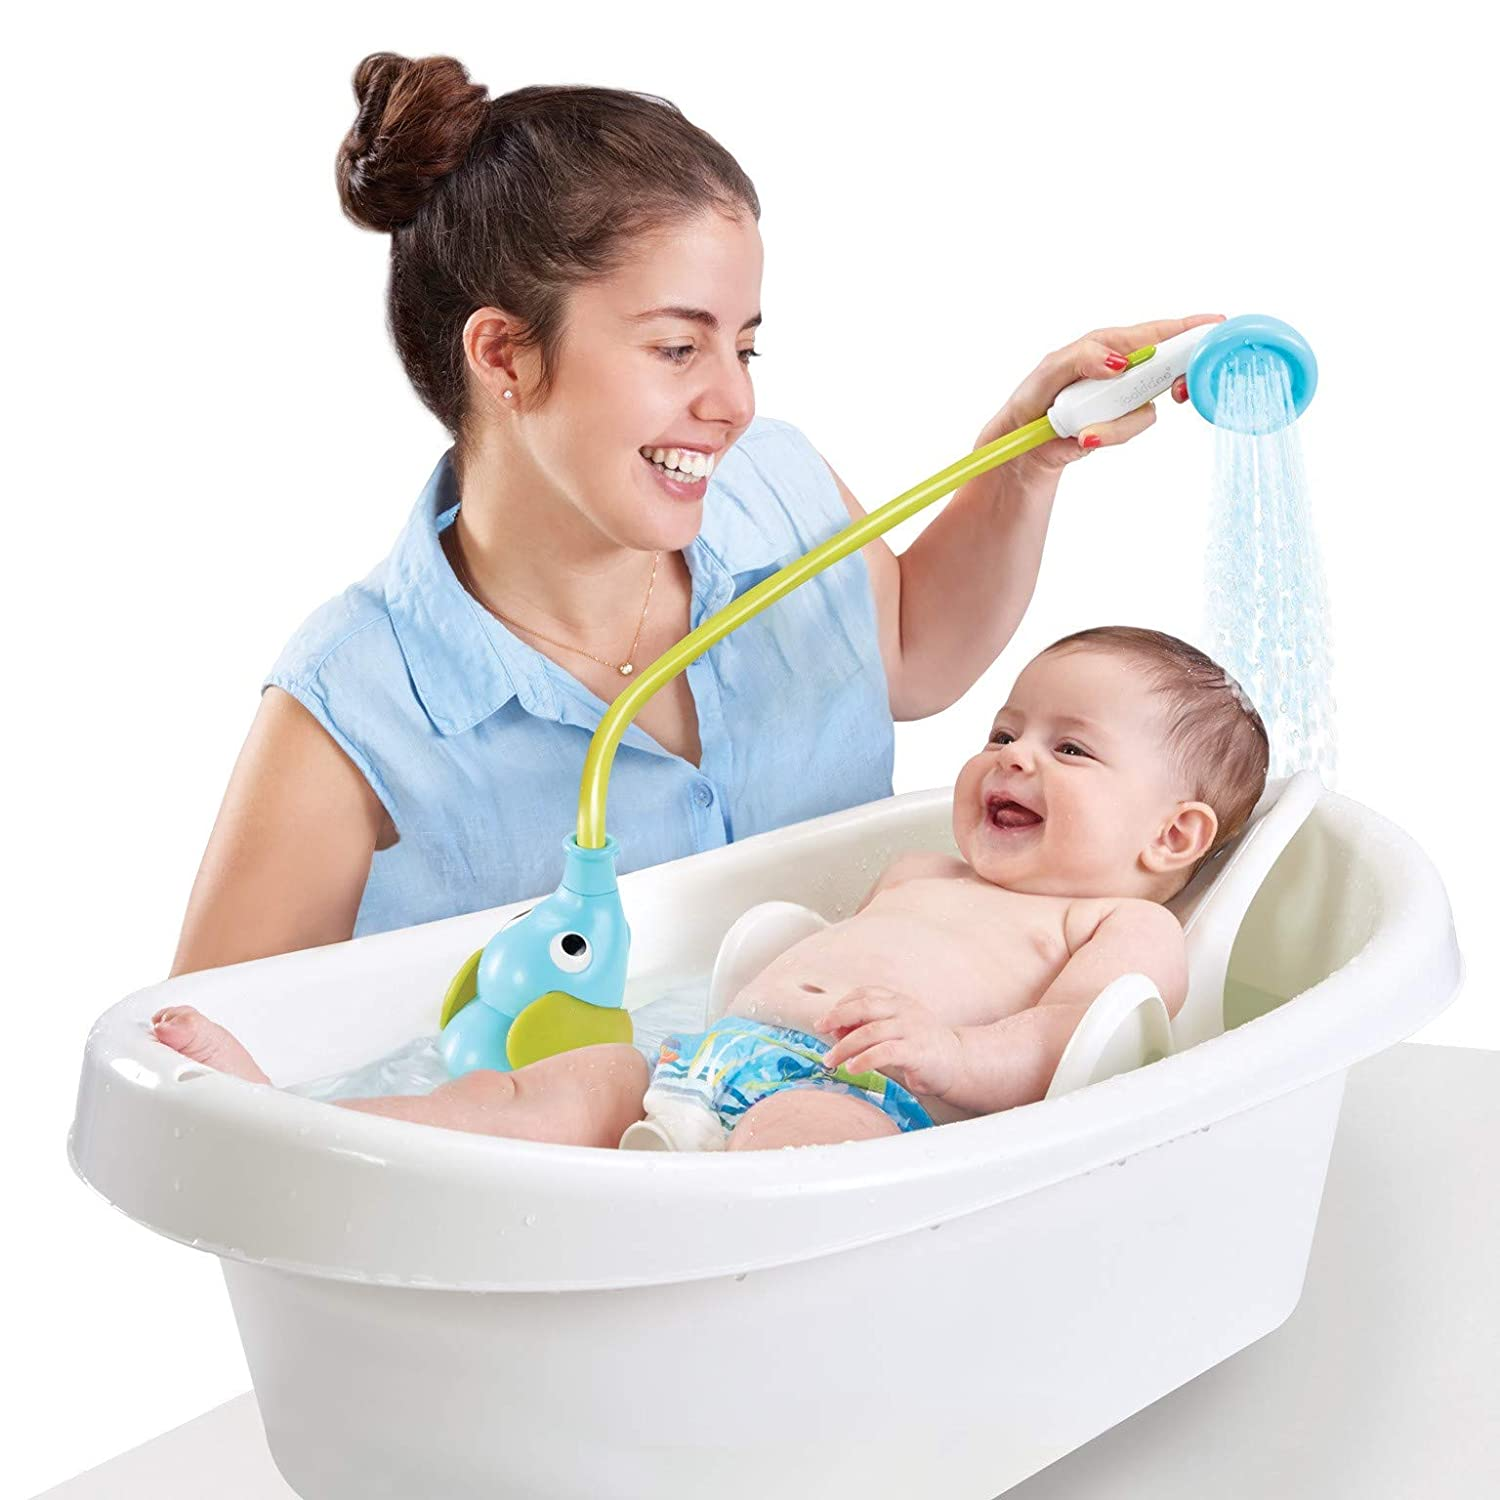 Amazon.com : Yookidoo Baby Bath Shower Head - Elephant Water Pump ...